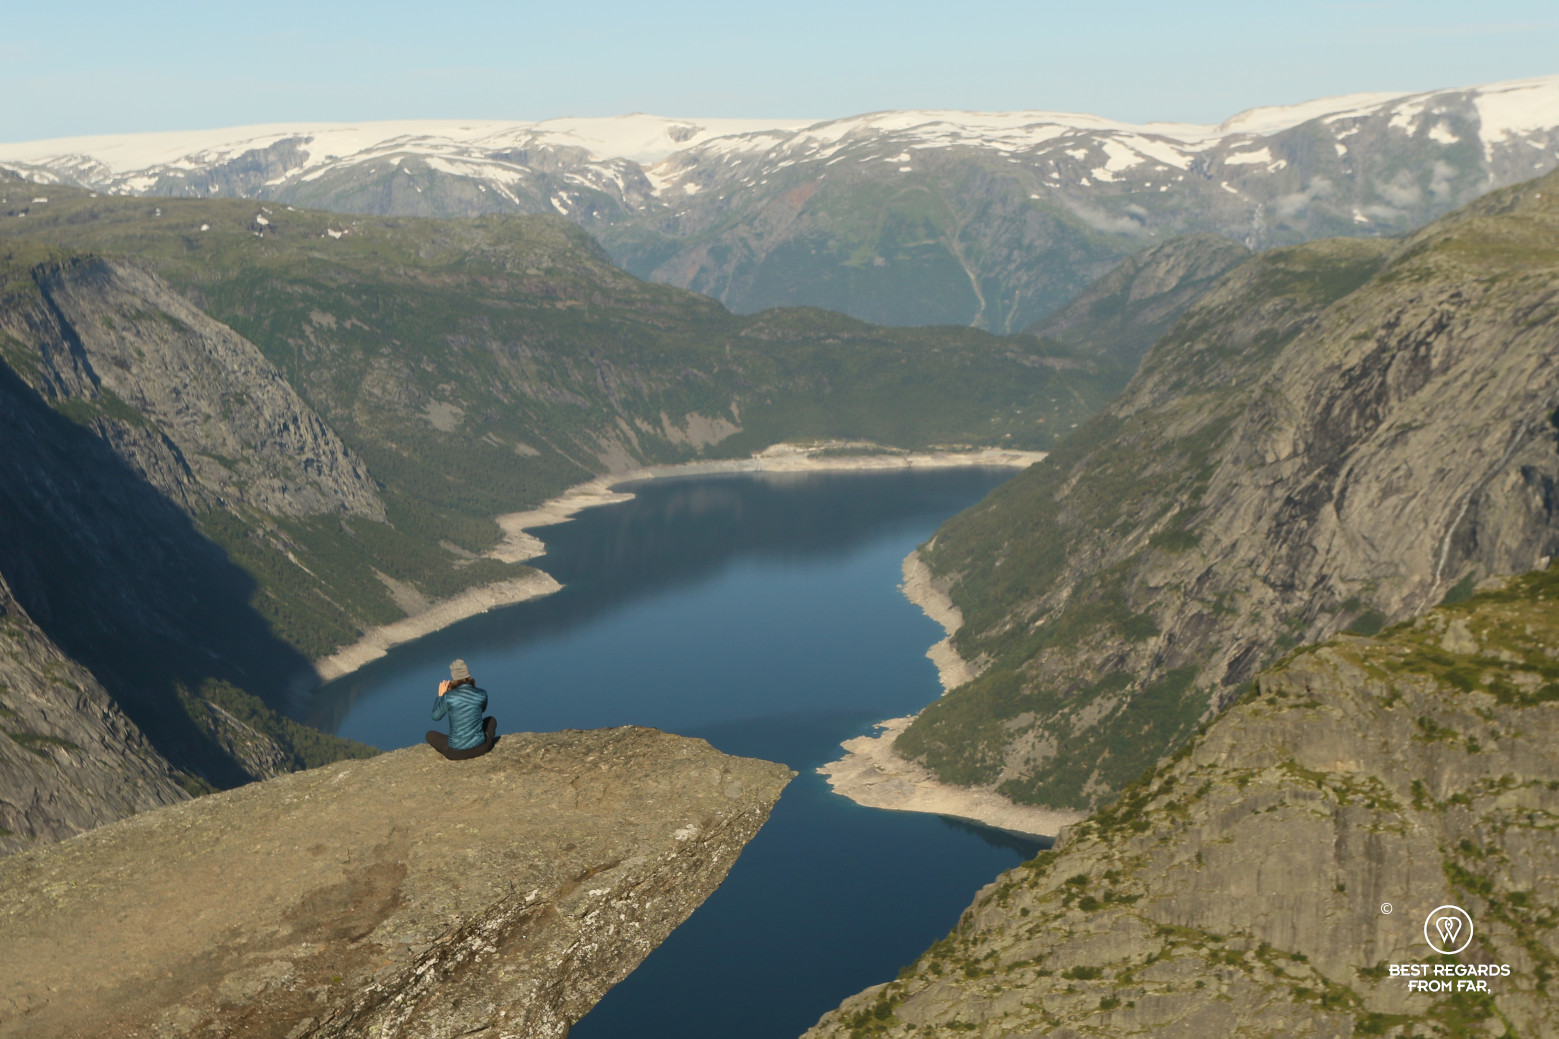 Writer Marcella van Alphen seated on the Trolltunga in Norway overlooking the mountains